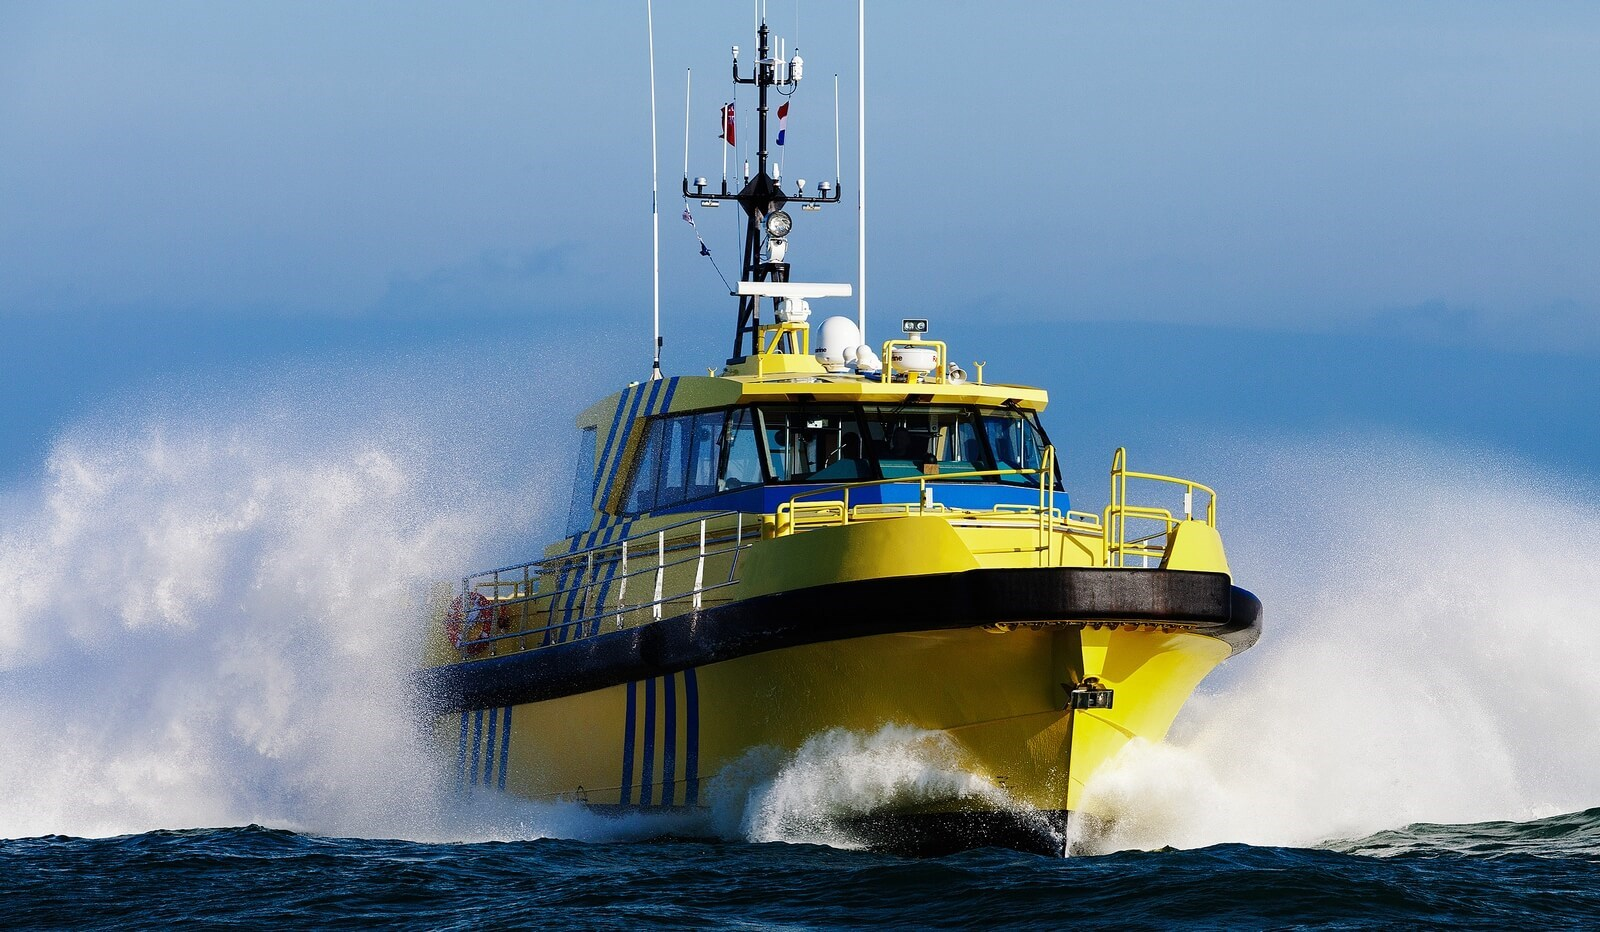 Crew Pilot Survey Boat is available for sale